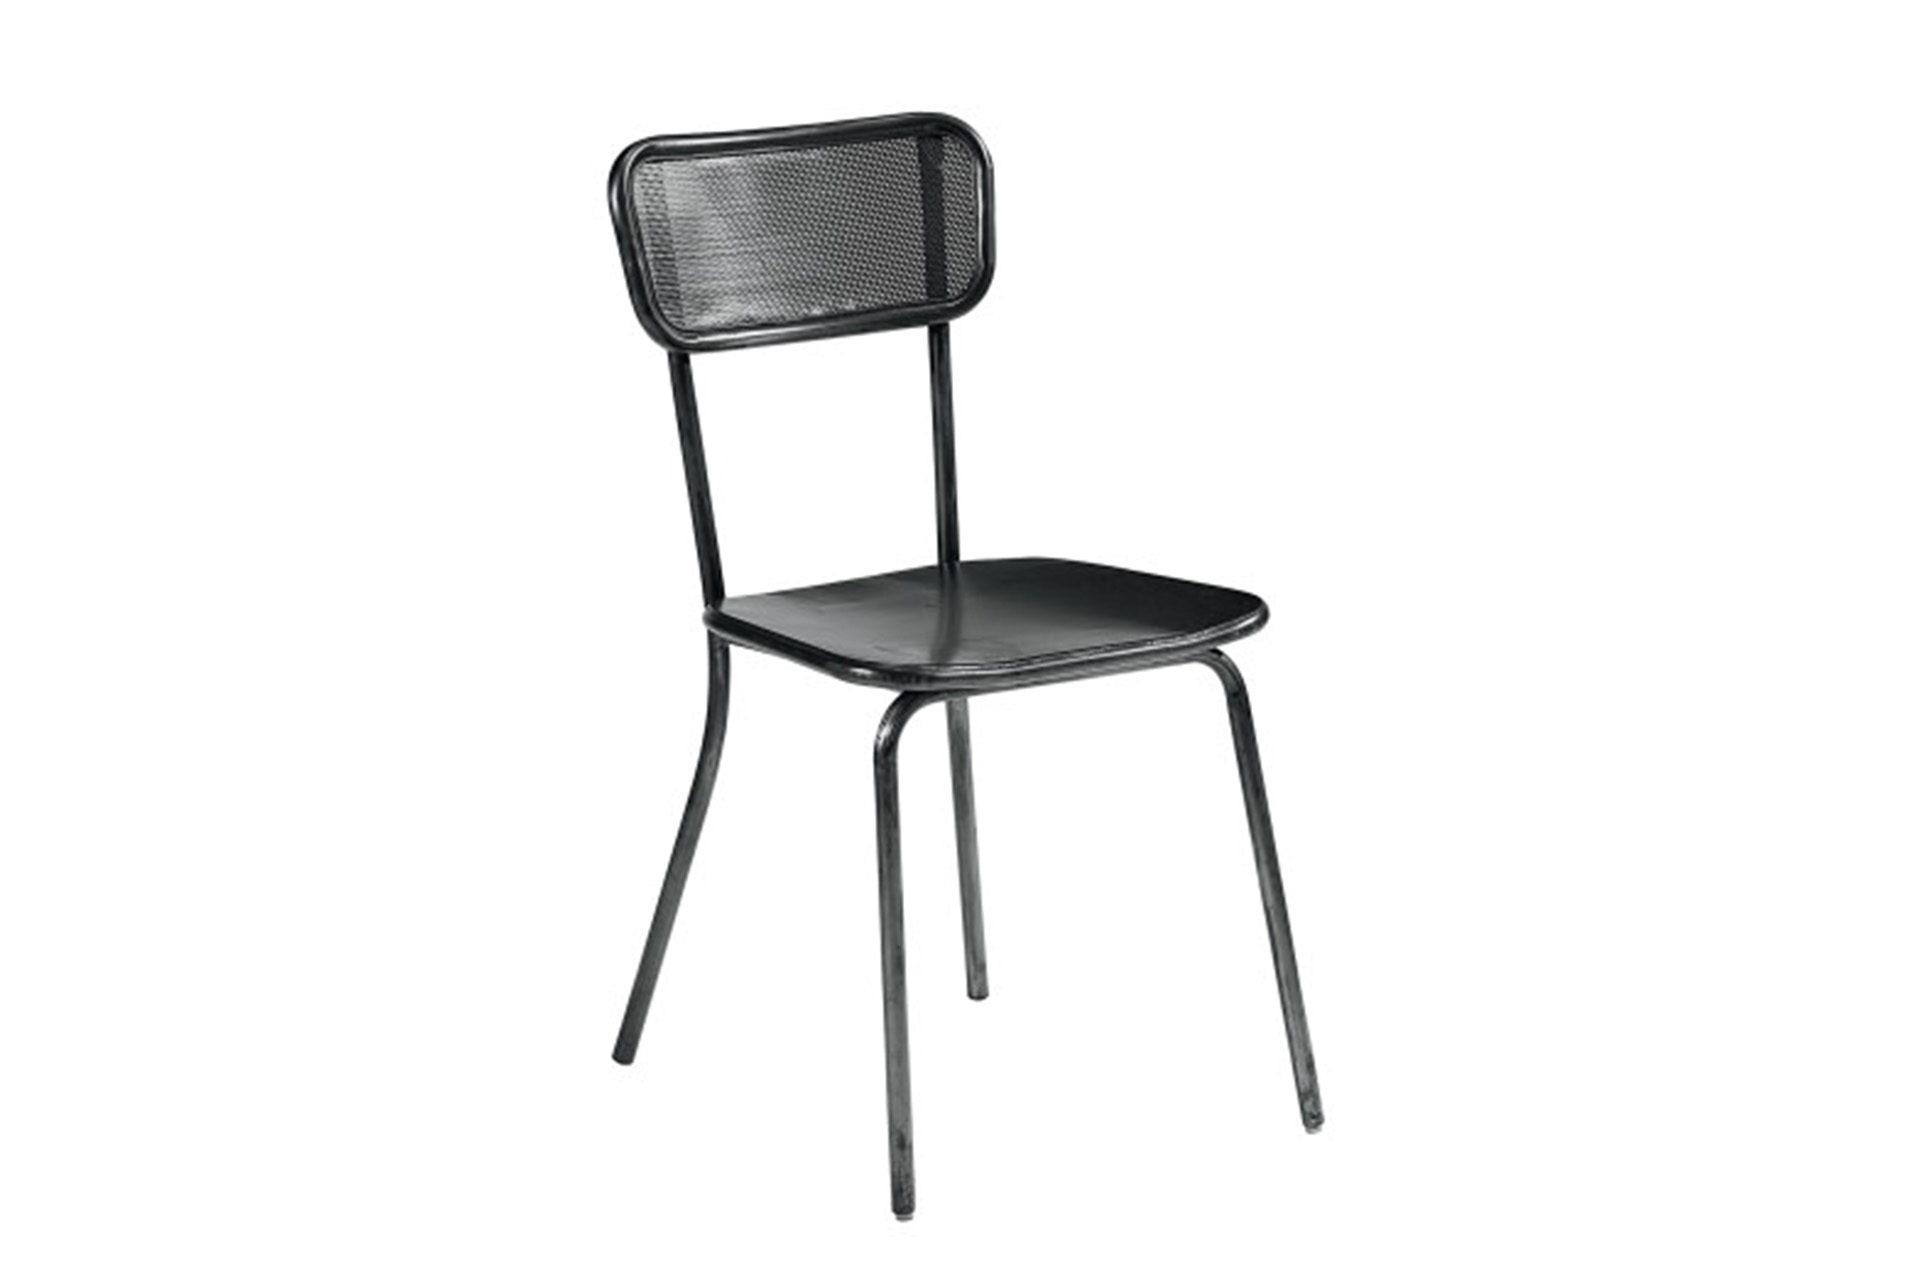 Magnolia Home Method Mesh Back Stock Metal Side Chair By Joanna Gaines  (Qty: 1) Has Been Successfully Added To Your Cart.